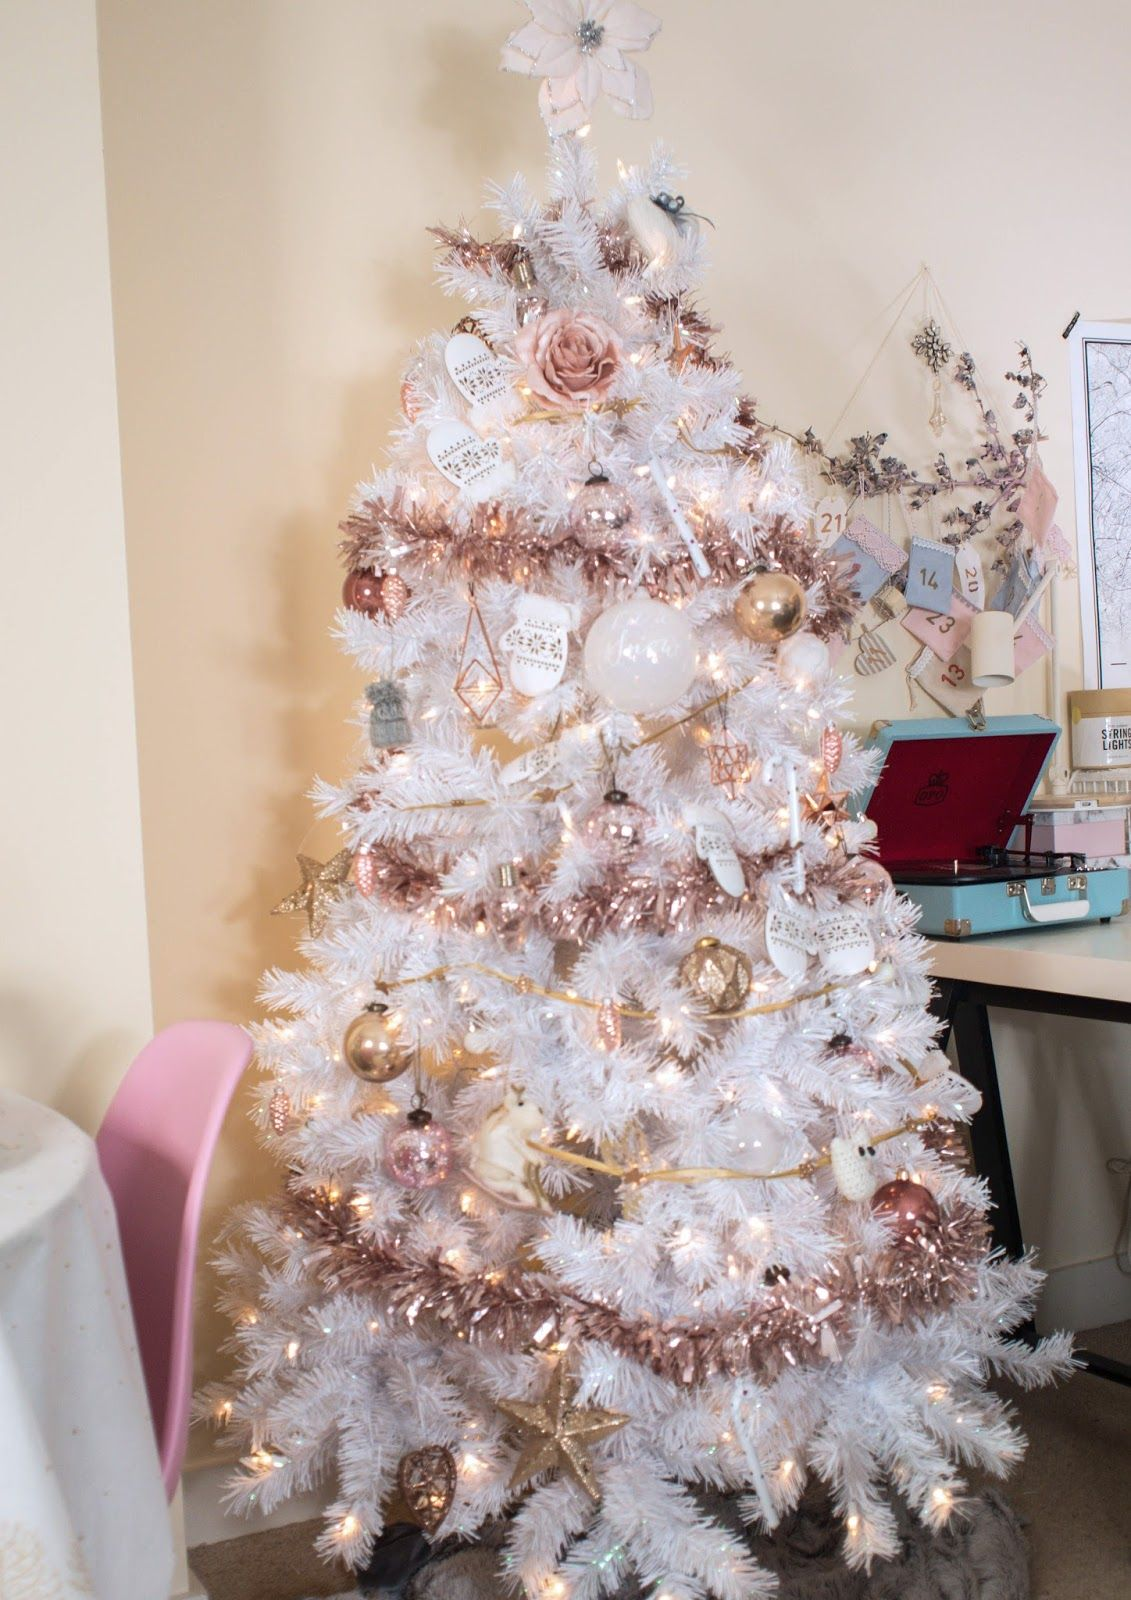 White Christmas Tree With Rose Gold And Pink Decorations Pink Christmas Tree Decorations White Xmas Tree Rose Gold Christmas